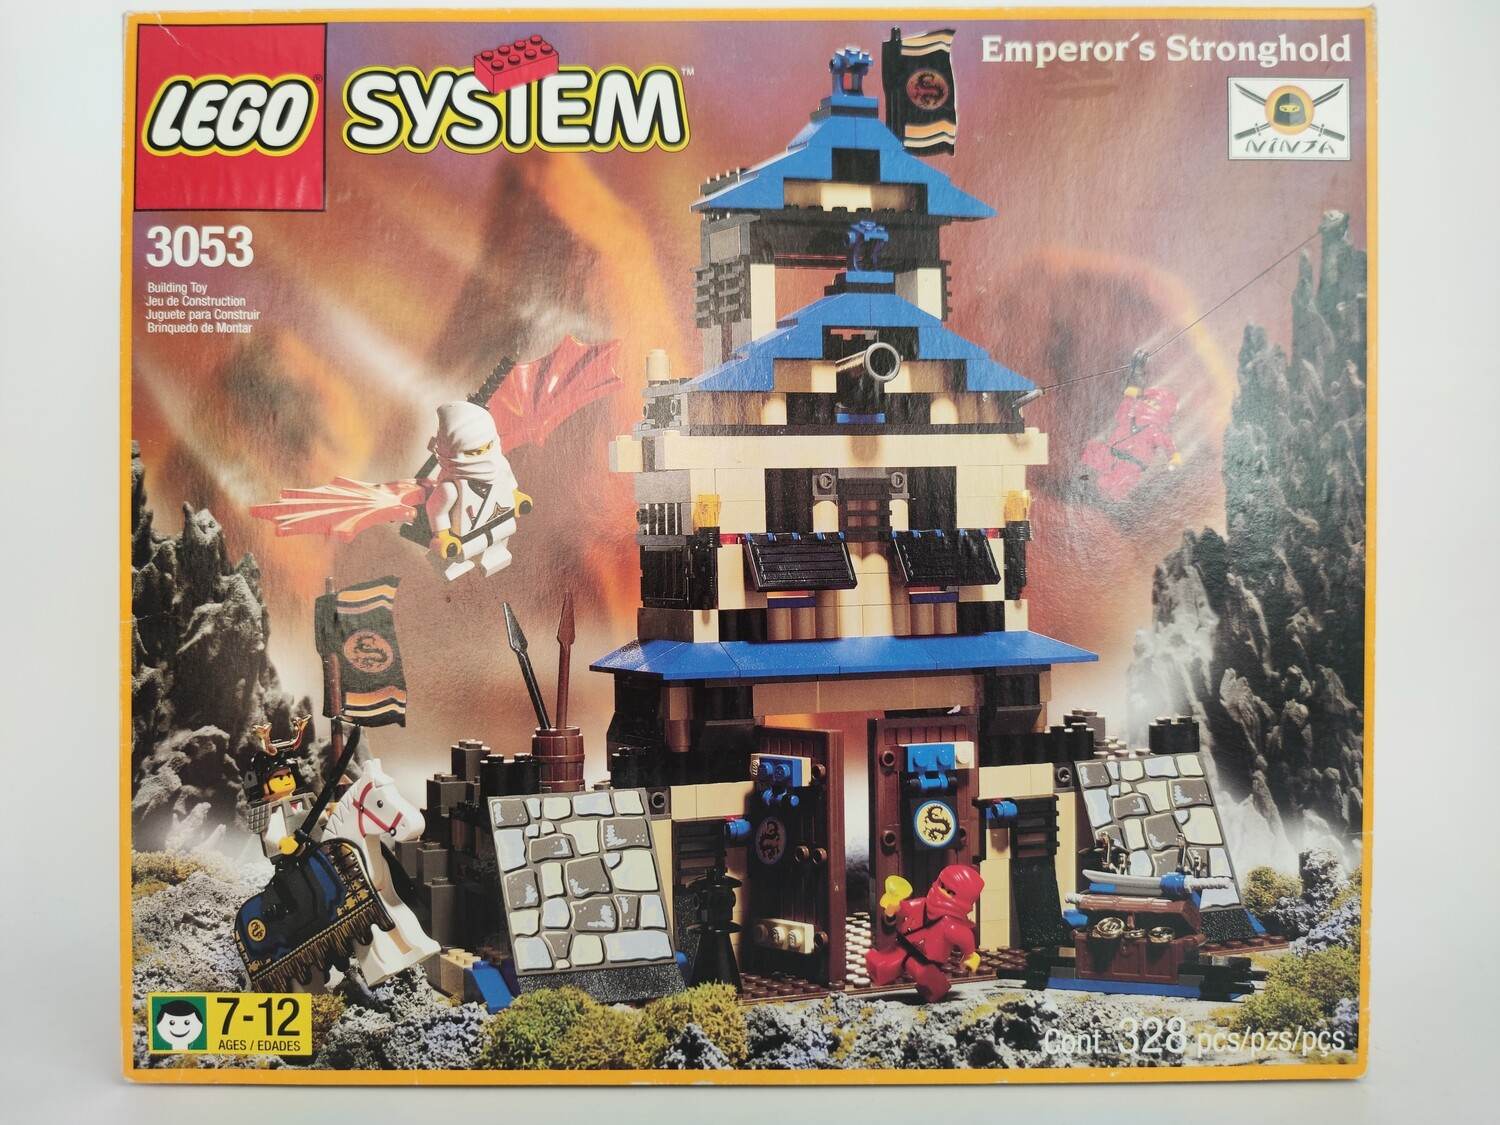 Lego 3053 Emperor's Stronghold